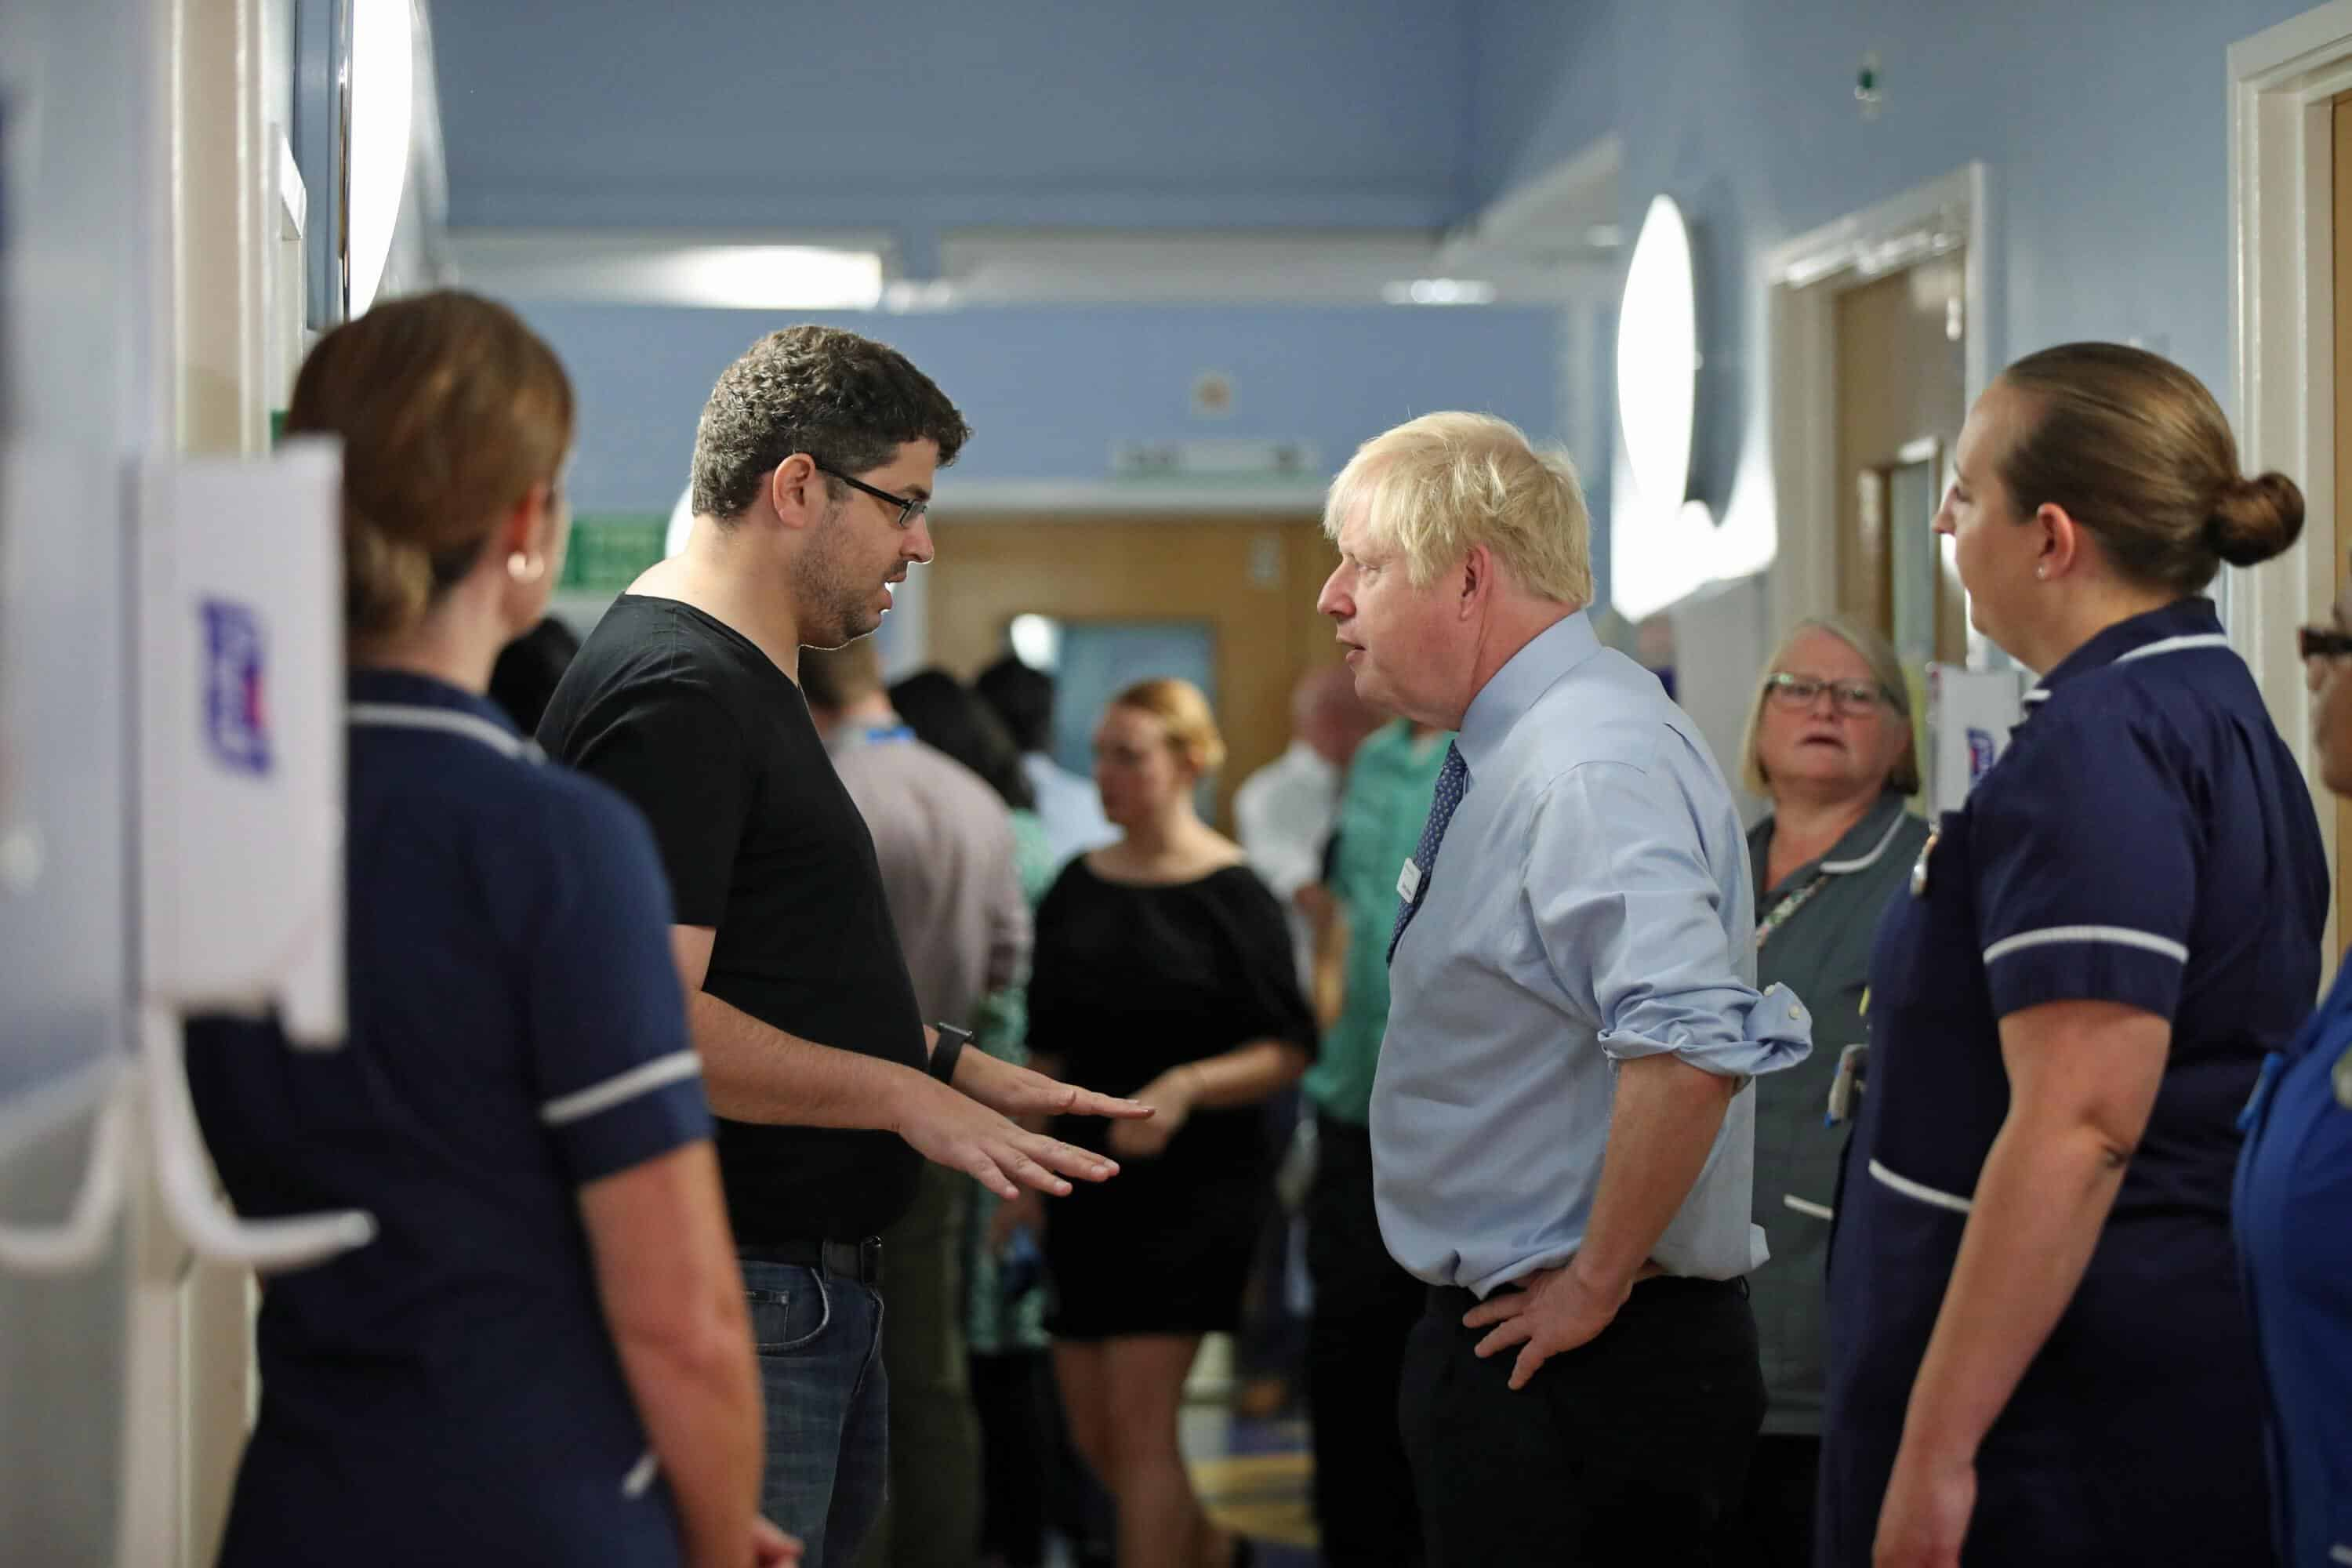 NHS dad attacks Boris Johnson on hospital visit